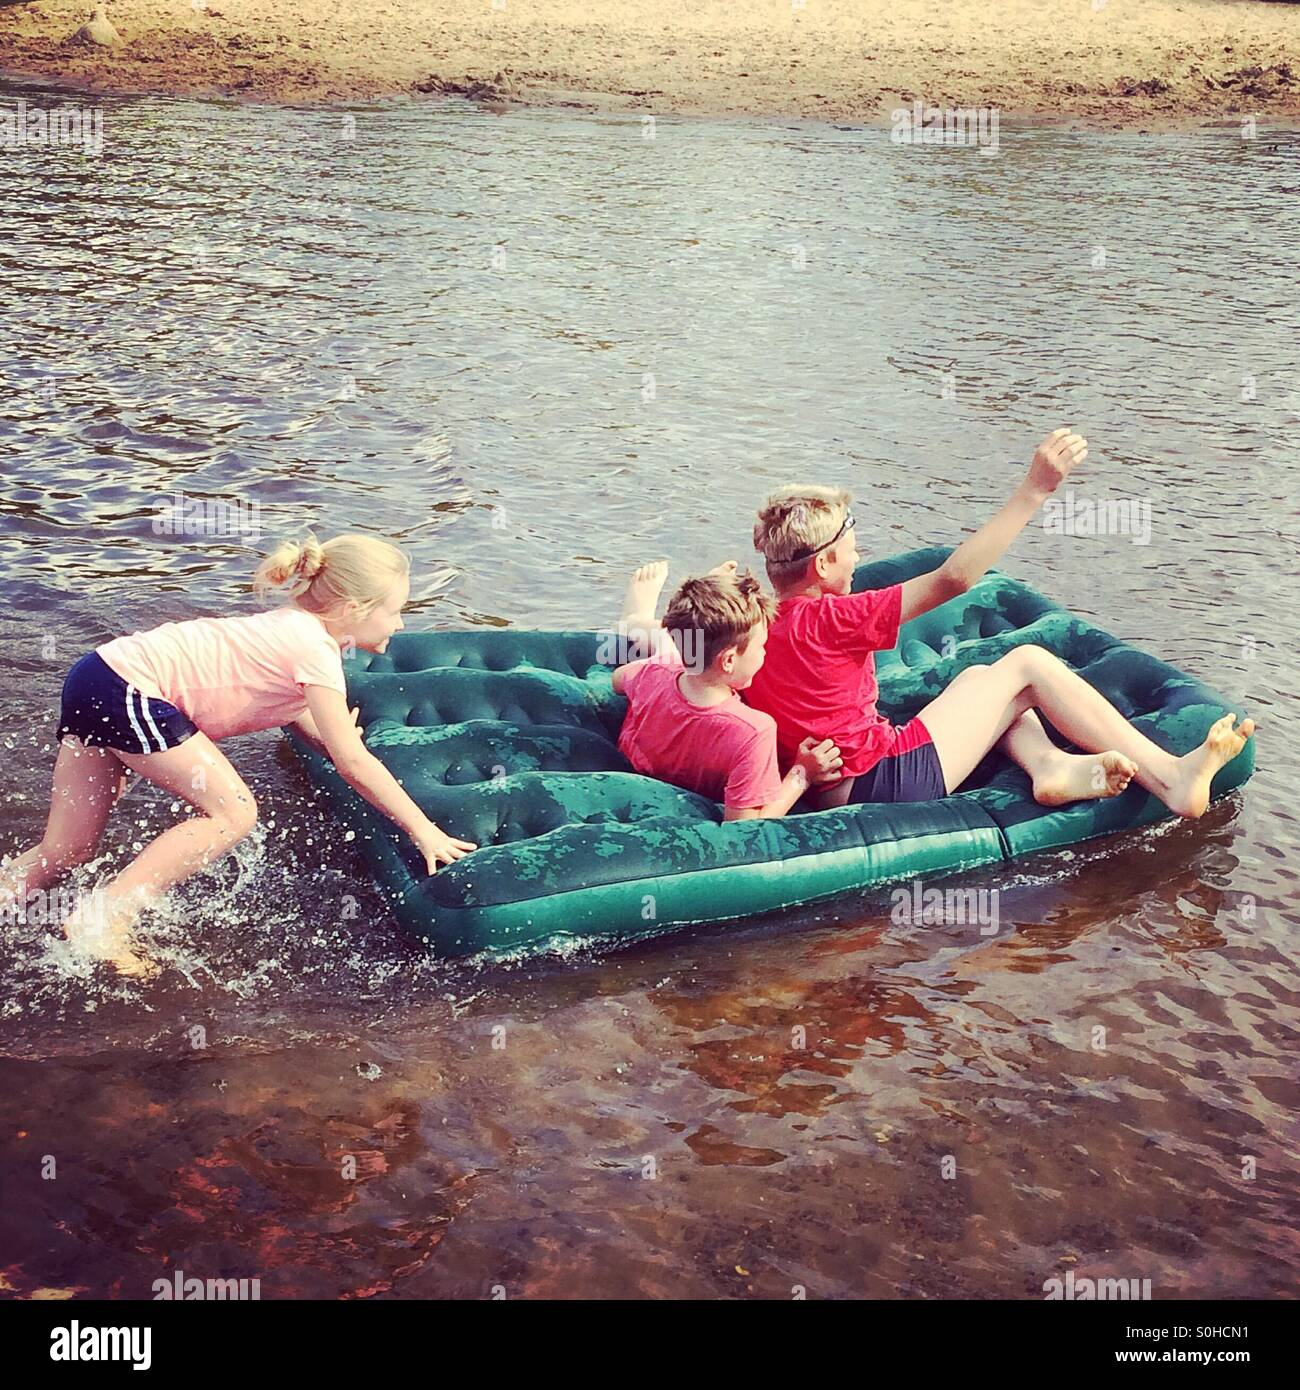 Children having fun on the river - Stock Image